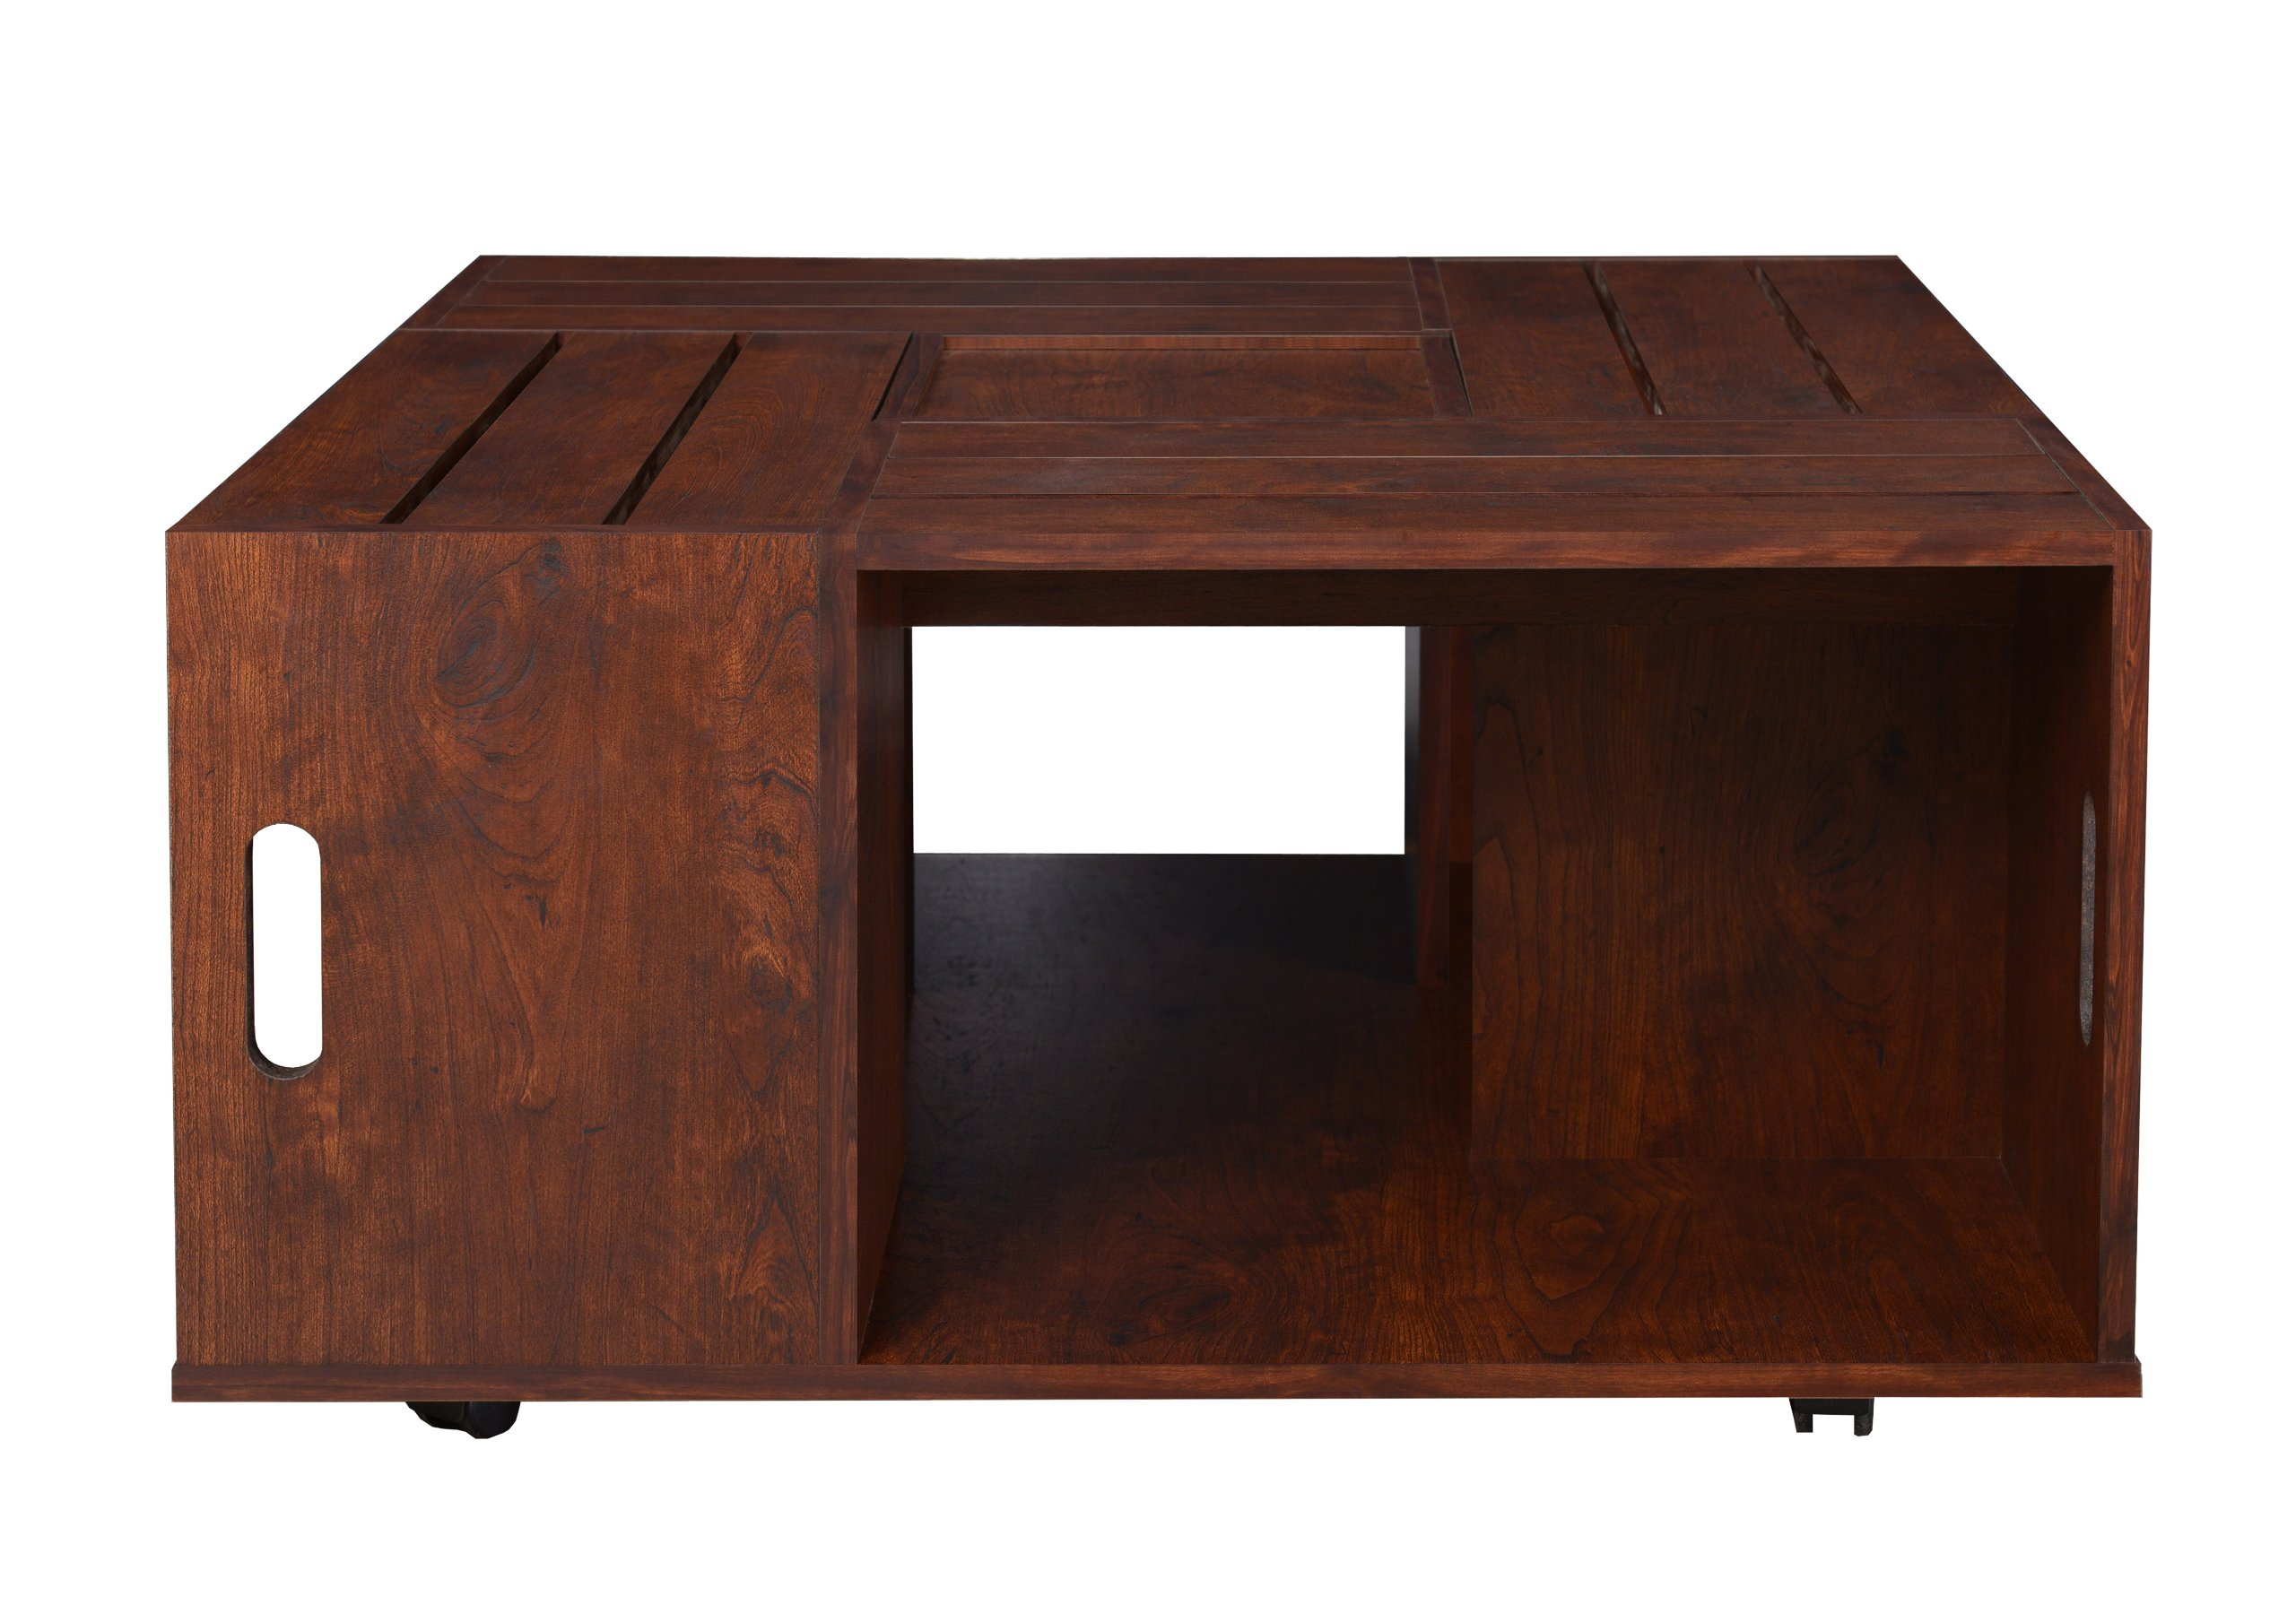 247SHOPATHOME YNJ-142-6 Gianna Coffee Table, Vintage Walnut - Contemporary style (1) open shelf with (4) storage compartments Smooth Rotating caster wheels - living-room-furniture, living-room, coffee-tables - 81o0Ddi6EiL -